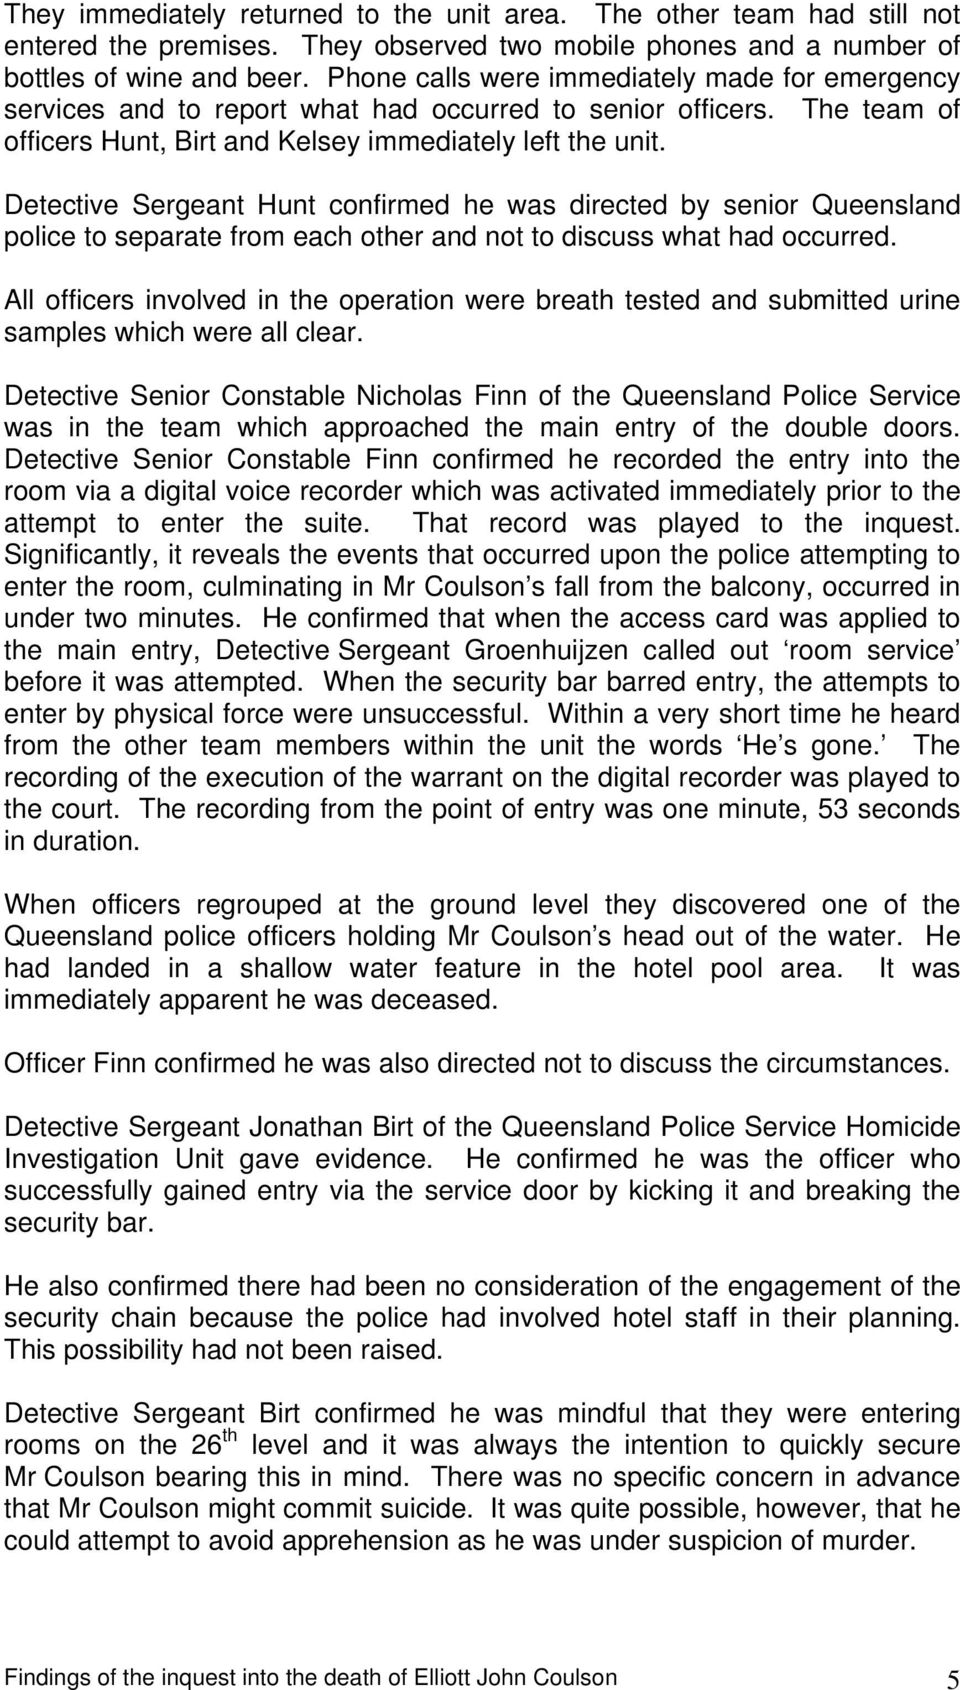 Detective Sergeant Hunt confirmed he was directed by senior Queensland police to separate from each other and not to discuss what had occurred.